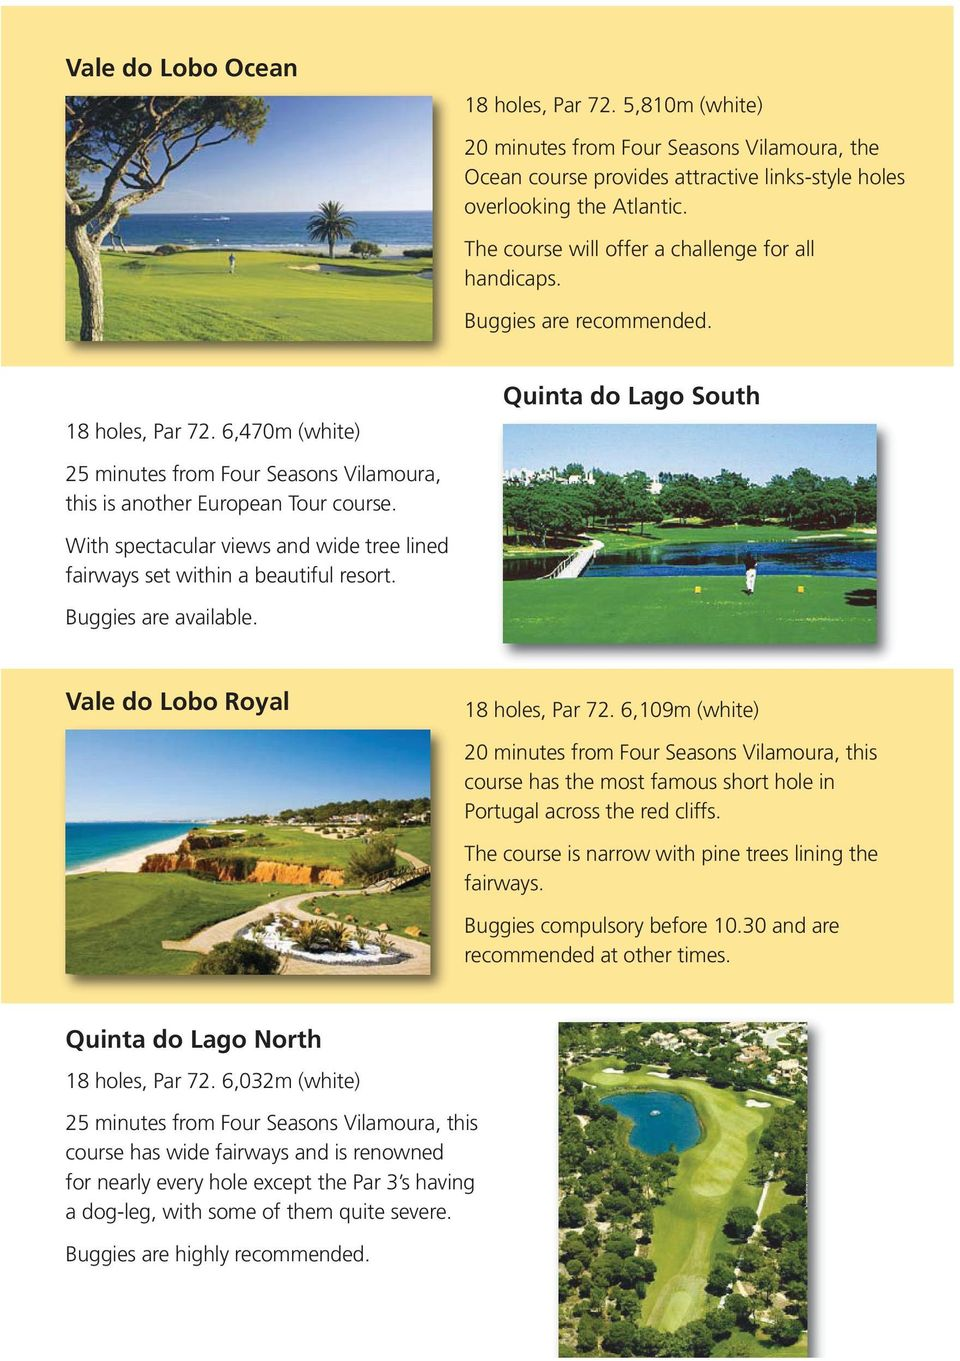 6,470m (white) Quinta do Lago South 25 minutes from Four Seasons Vilamoura, this is another European Tour course. With spectacular views and wide tree lined fairways set within a beautiful resort.